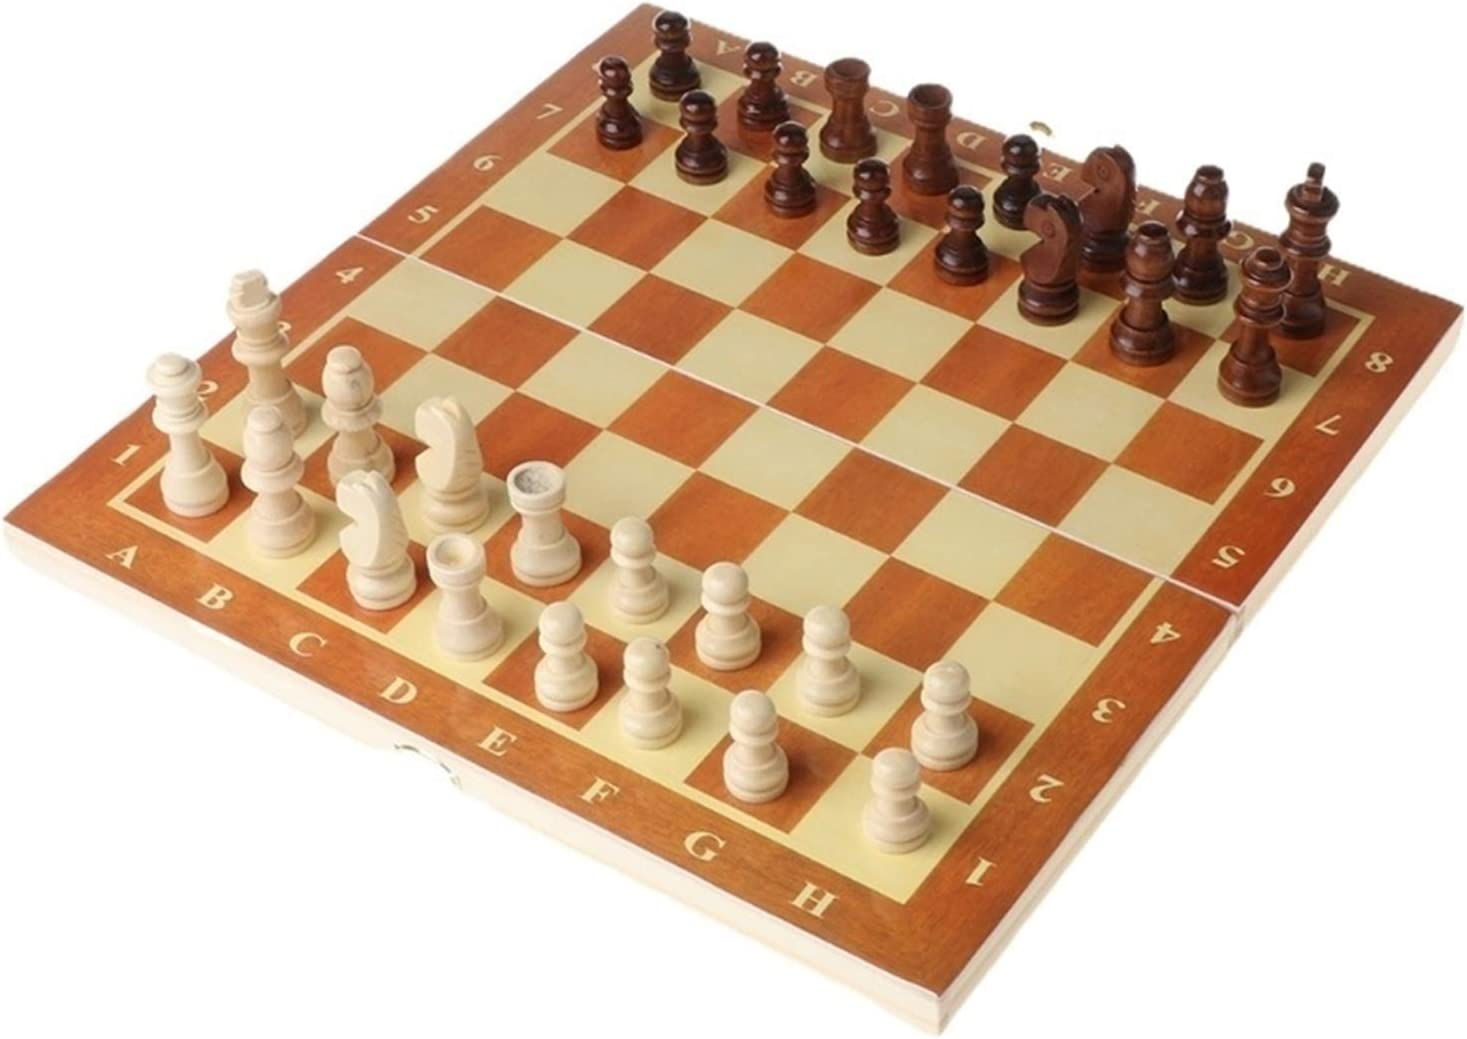 Zenli 3 in 1 Wooden International C Board Super Special SALE held Games Chess Set Travel Special sale item